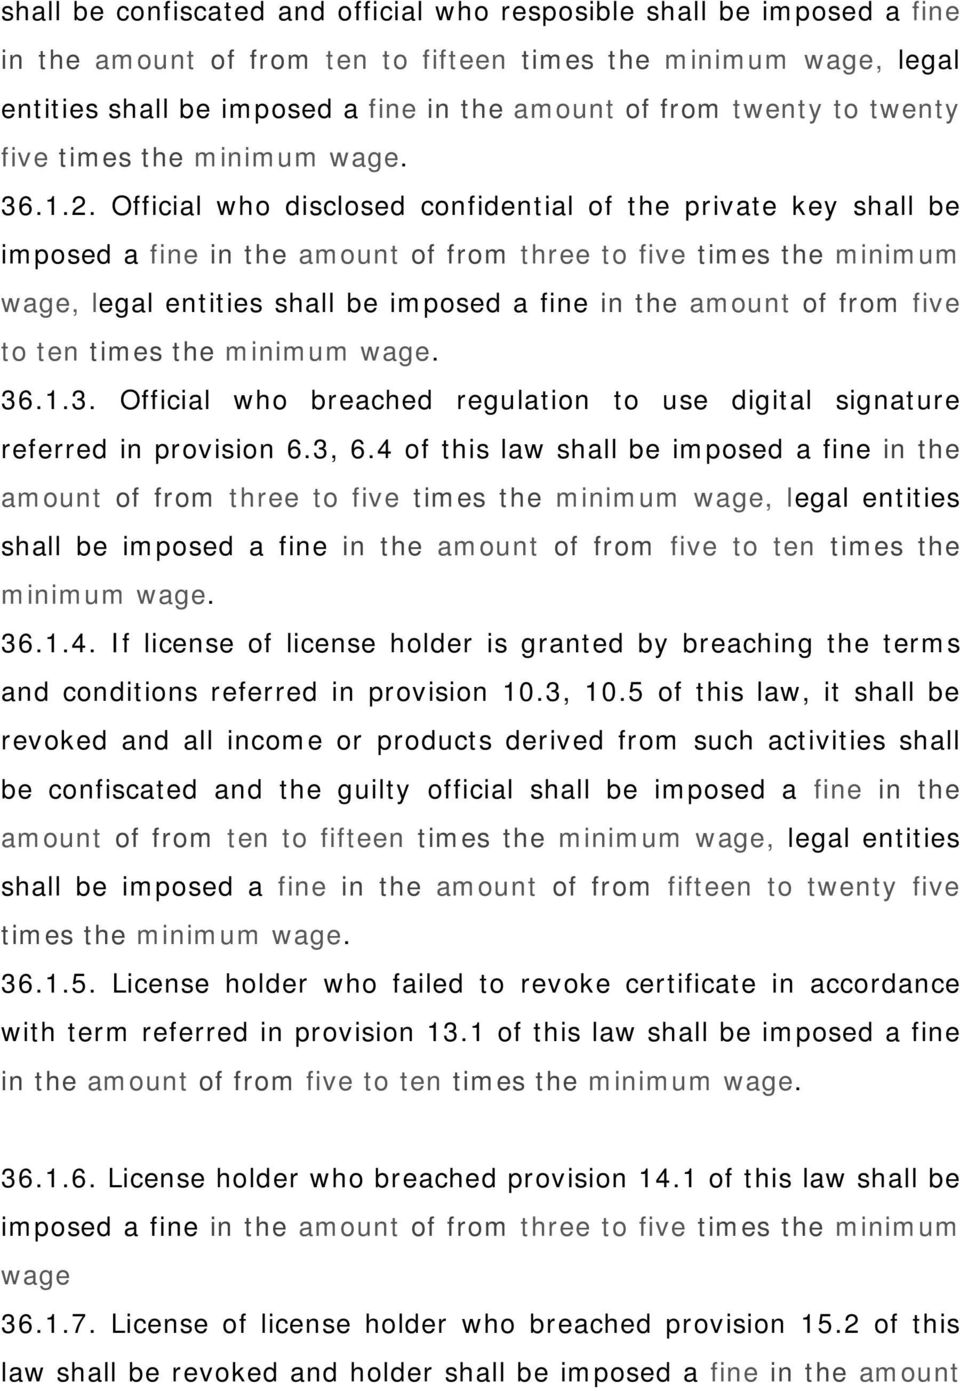 Official who disclosed confidential of the private key shall be imposed a fine in the amount of from three to five times the minimum wage, legal entities shall be imposed a fine in the amount of from